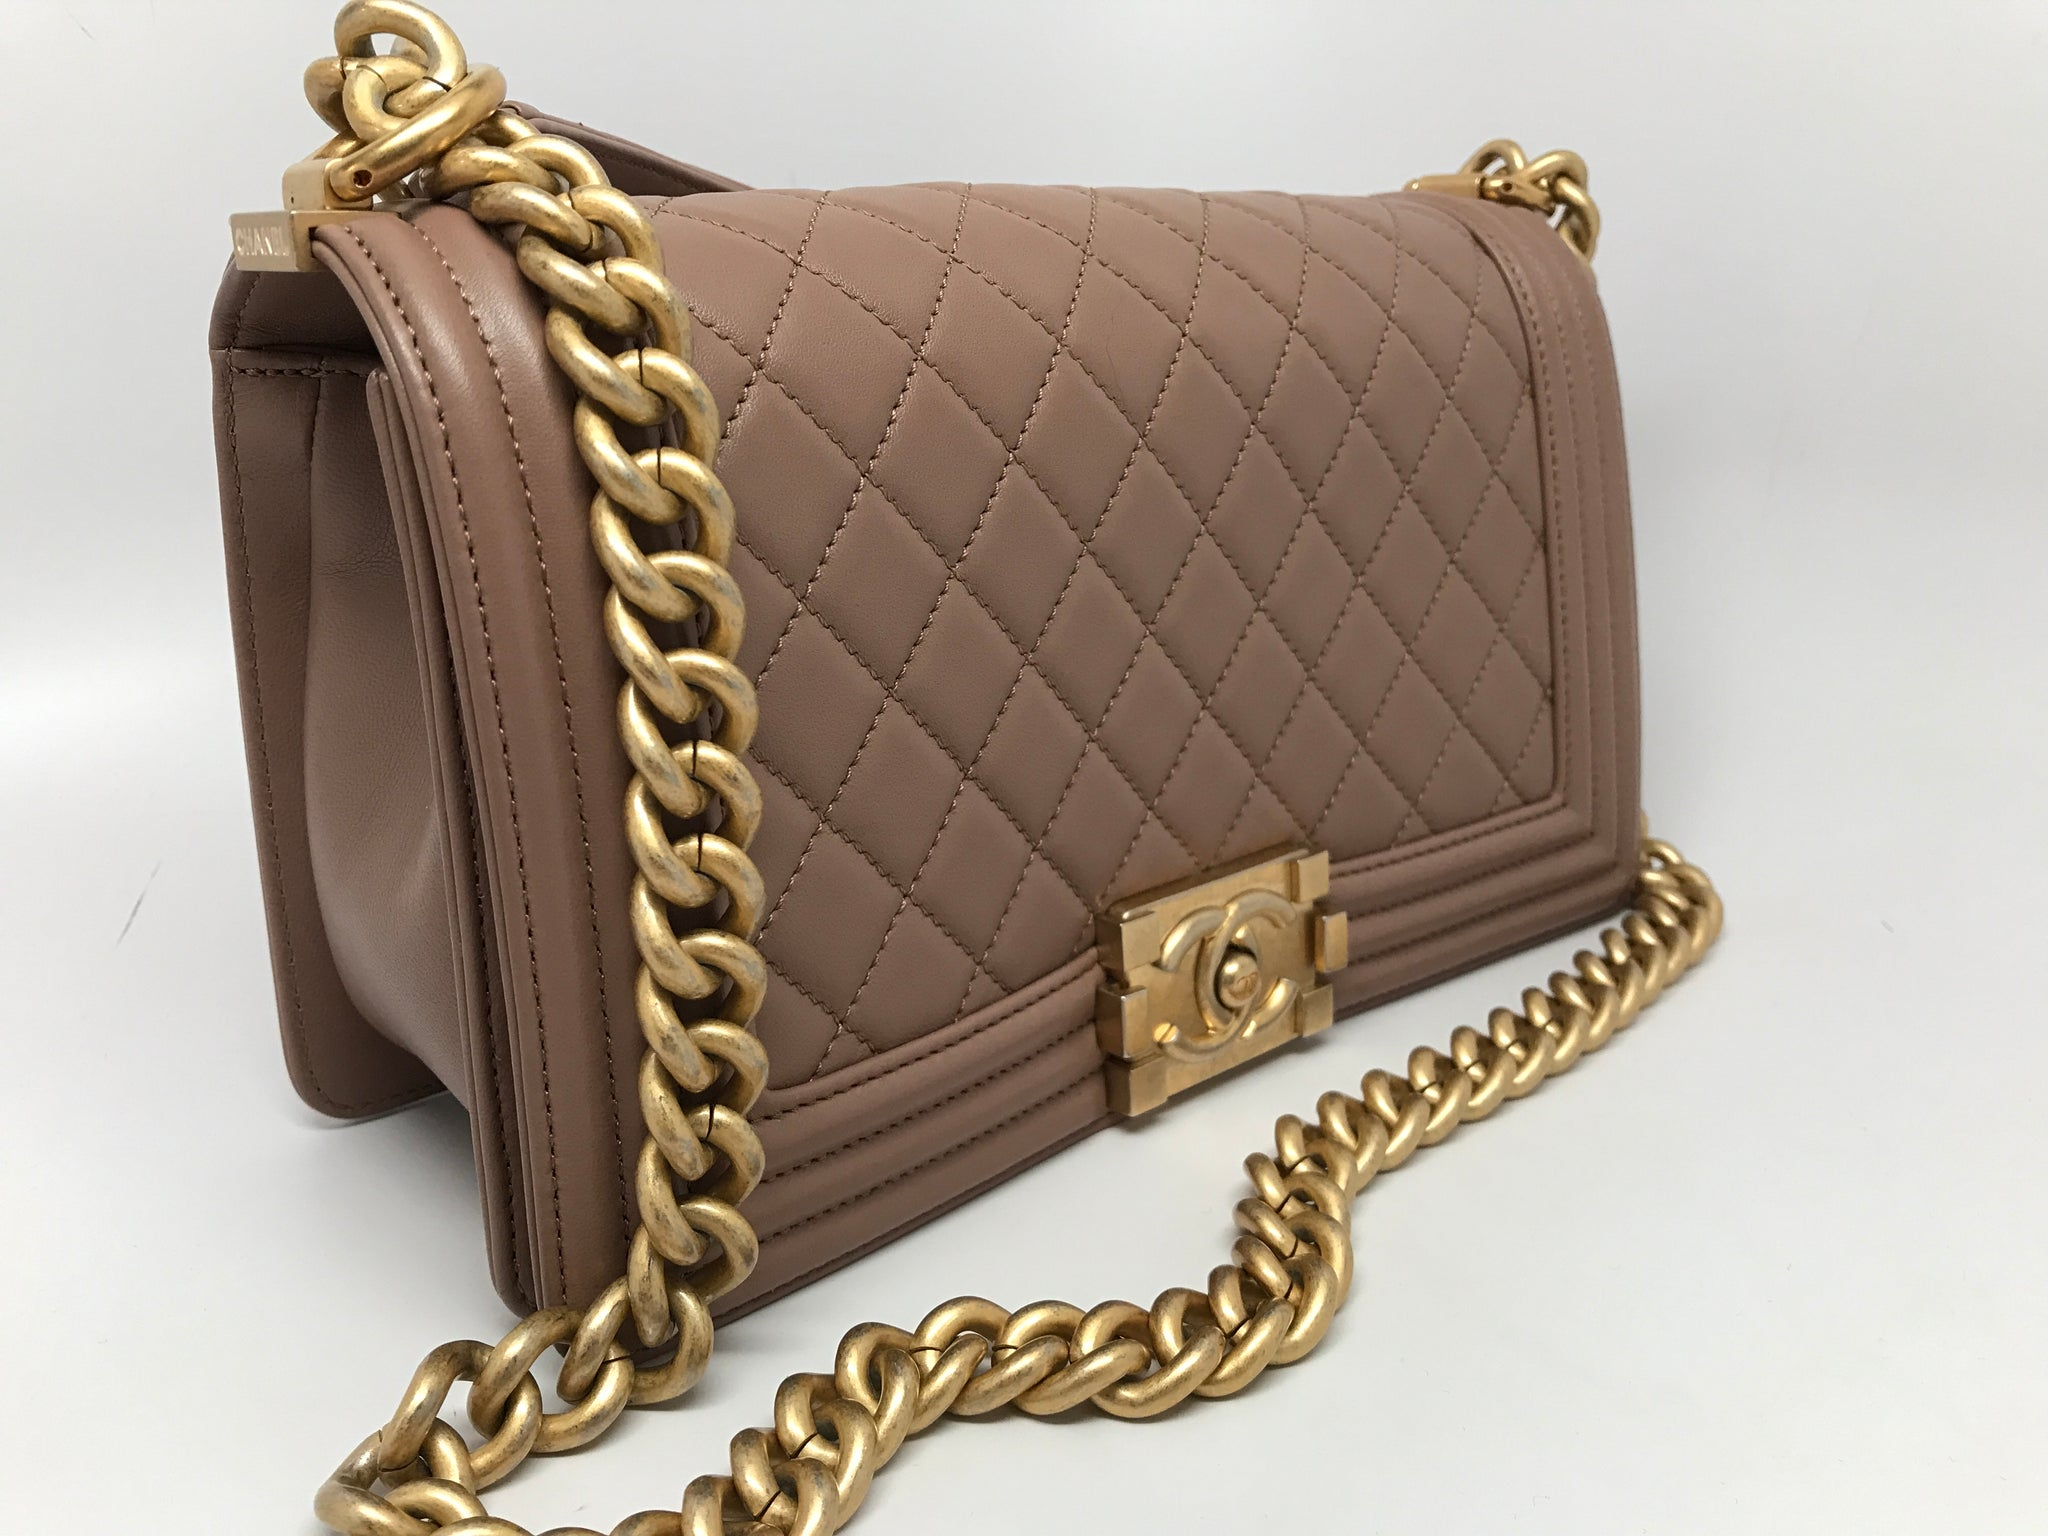 CHANEL MEDIUM BOY FLAP BAG - BEIGE LAMBSKIN